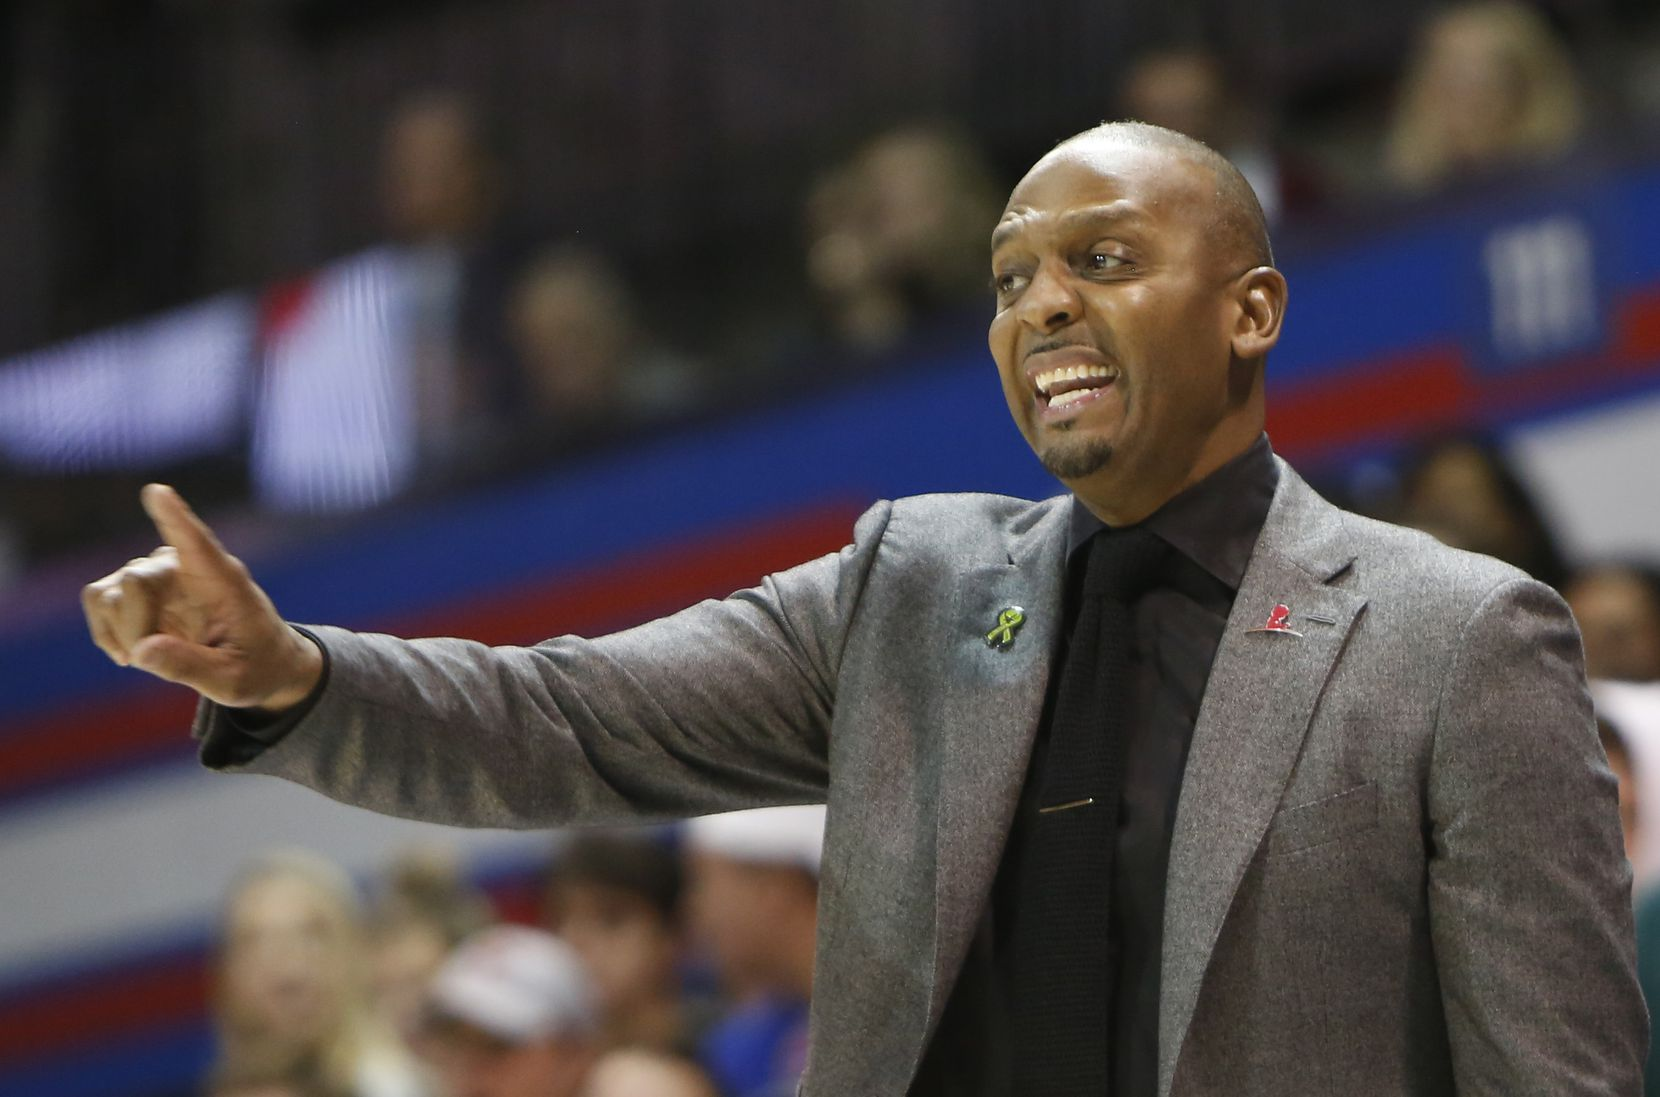 "Memphis head coach ""Penny"" Hardaway directs his players during first half action against SMU. The two teams from the NCAA's American Athletic Conference played their men's basketball game at SMU's Moody Coliseum in Dallas on February 25, 2020."